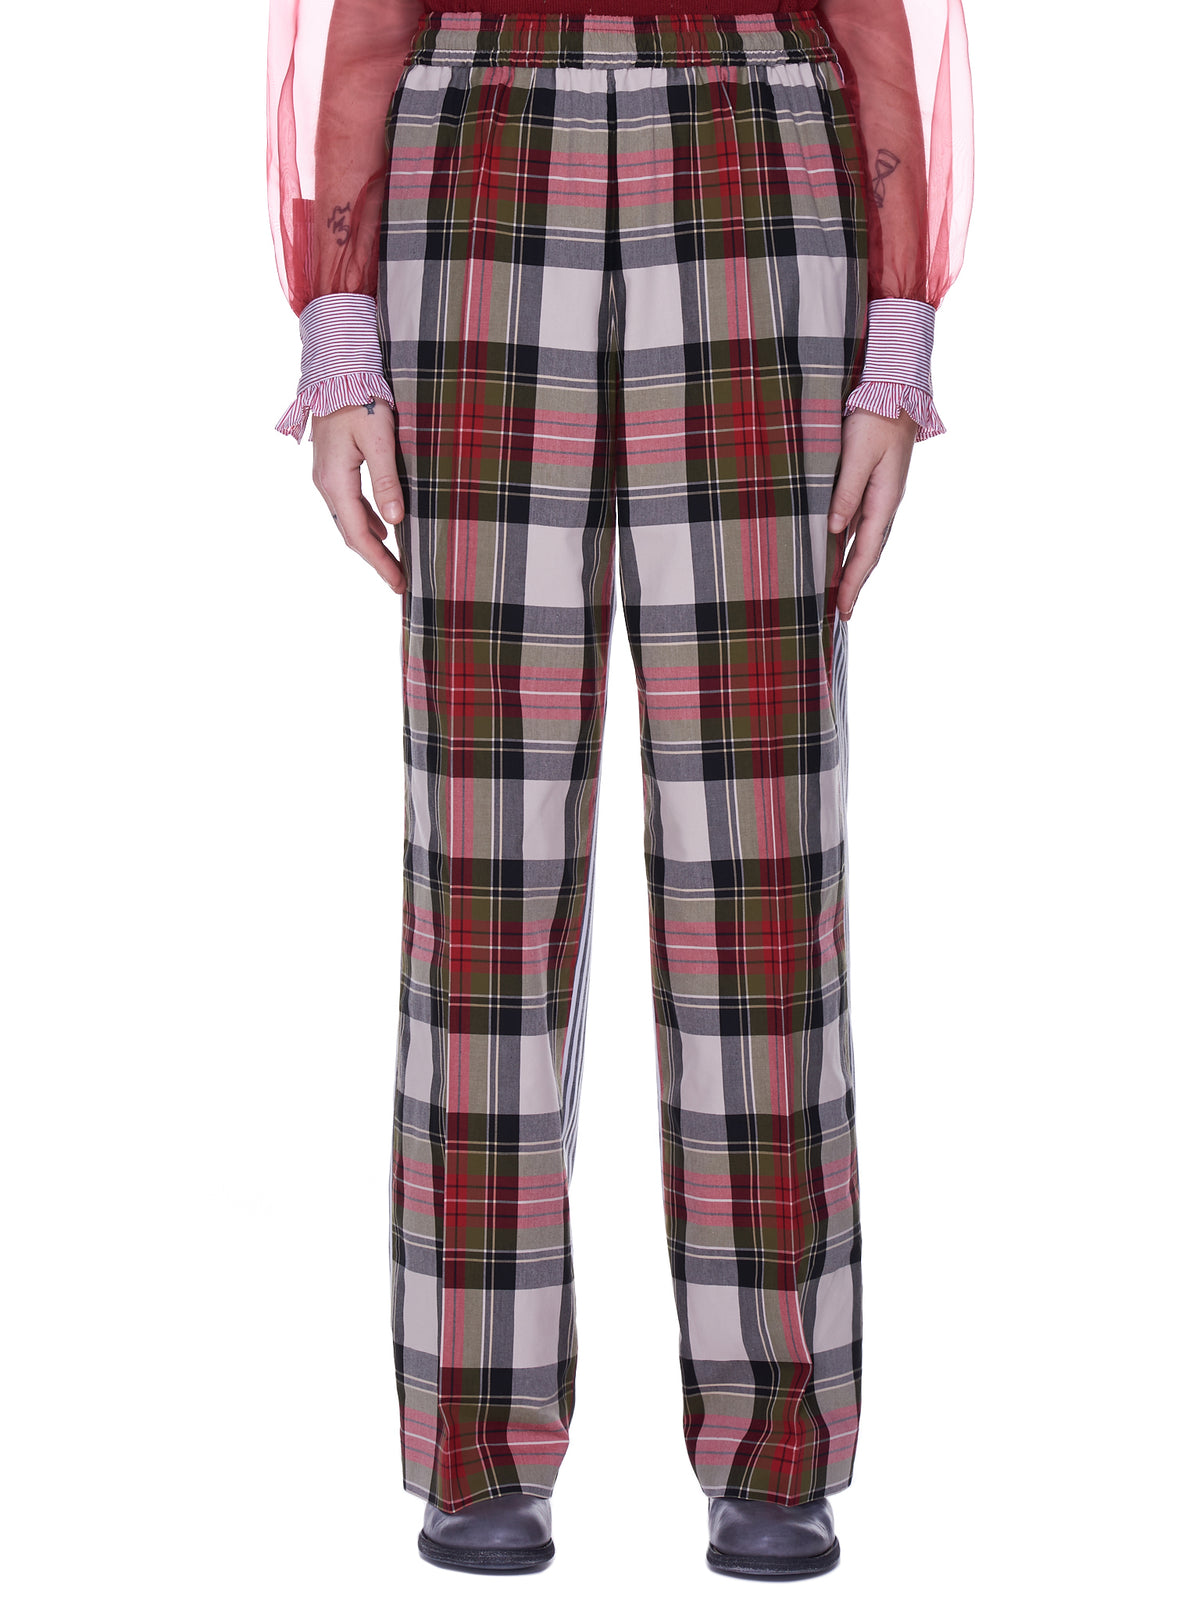 Two-Tone Trousers (SU1A1502-2-RED-CHECK)